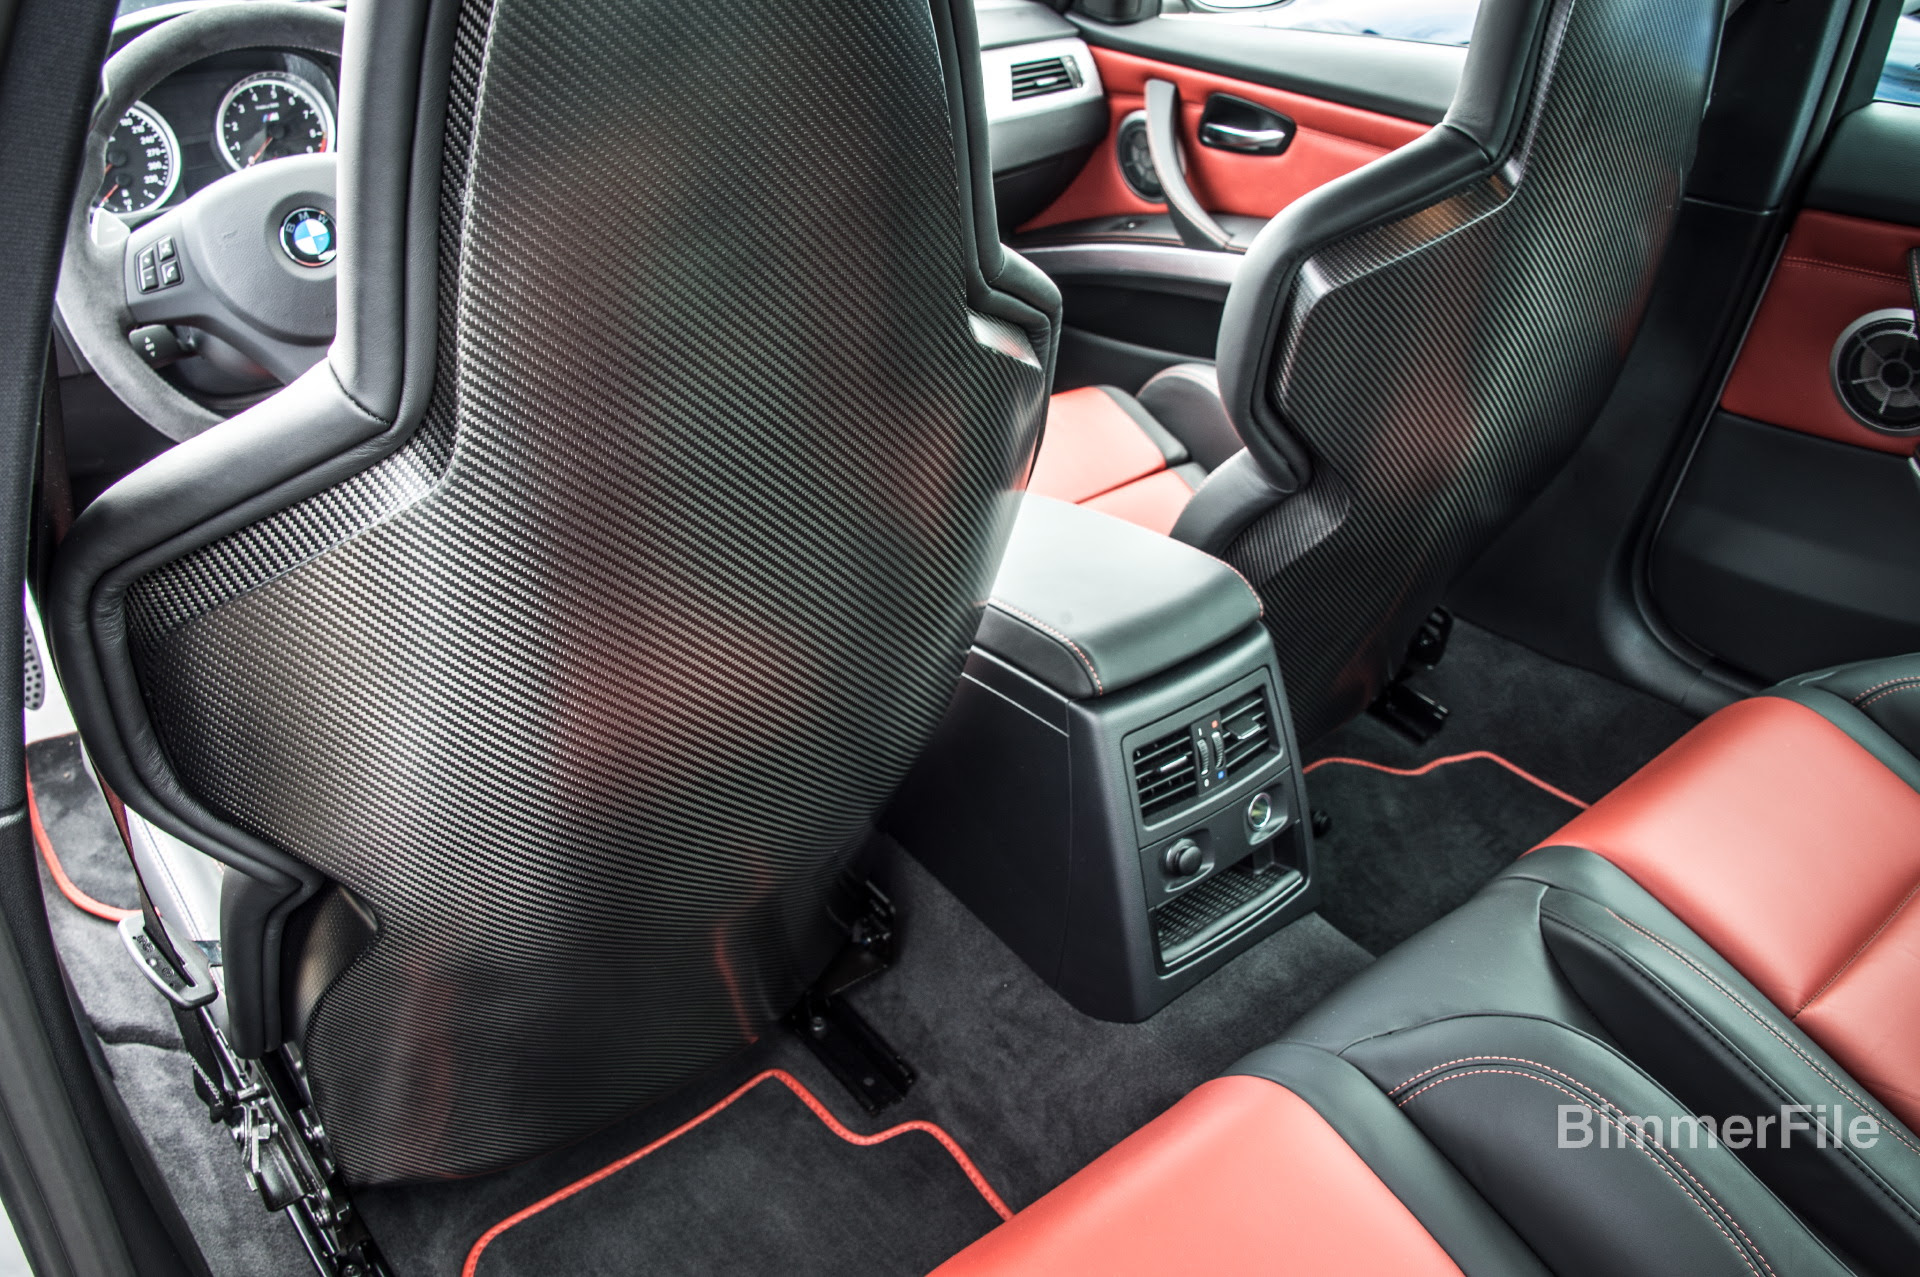 Confirmed Bmw M3m4 To Have Optional Carbon Backed Seats Bimmerfile